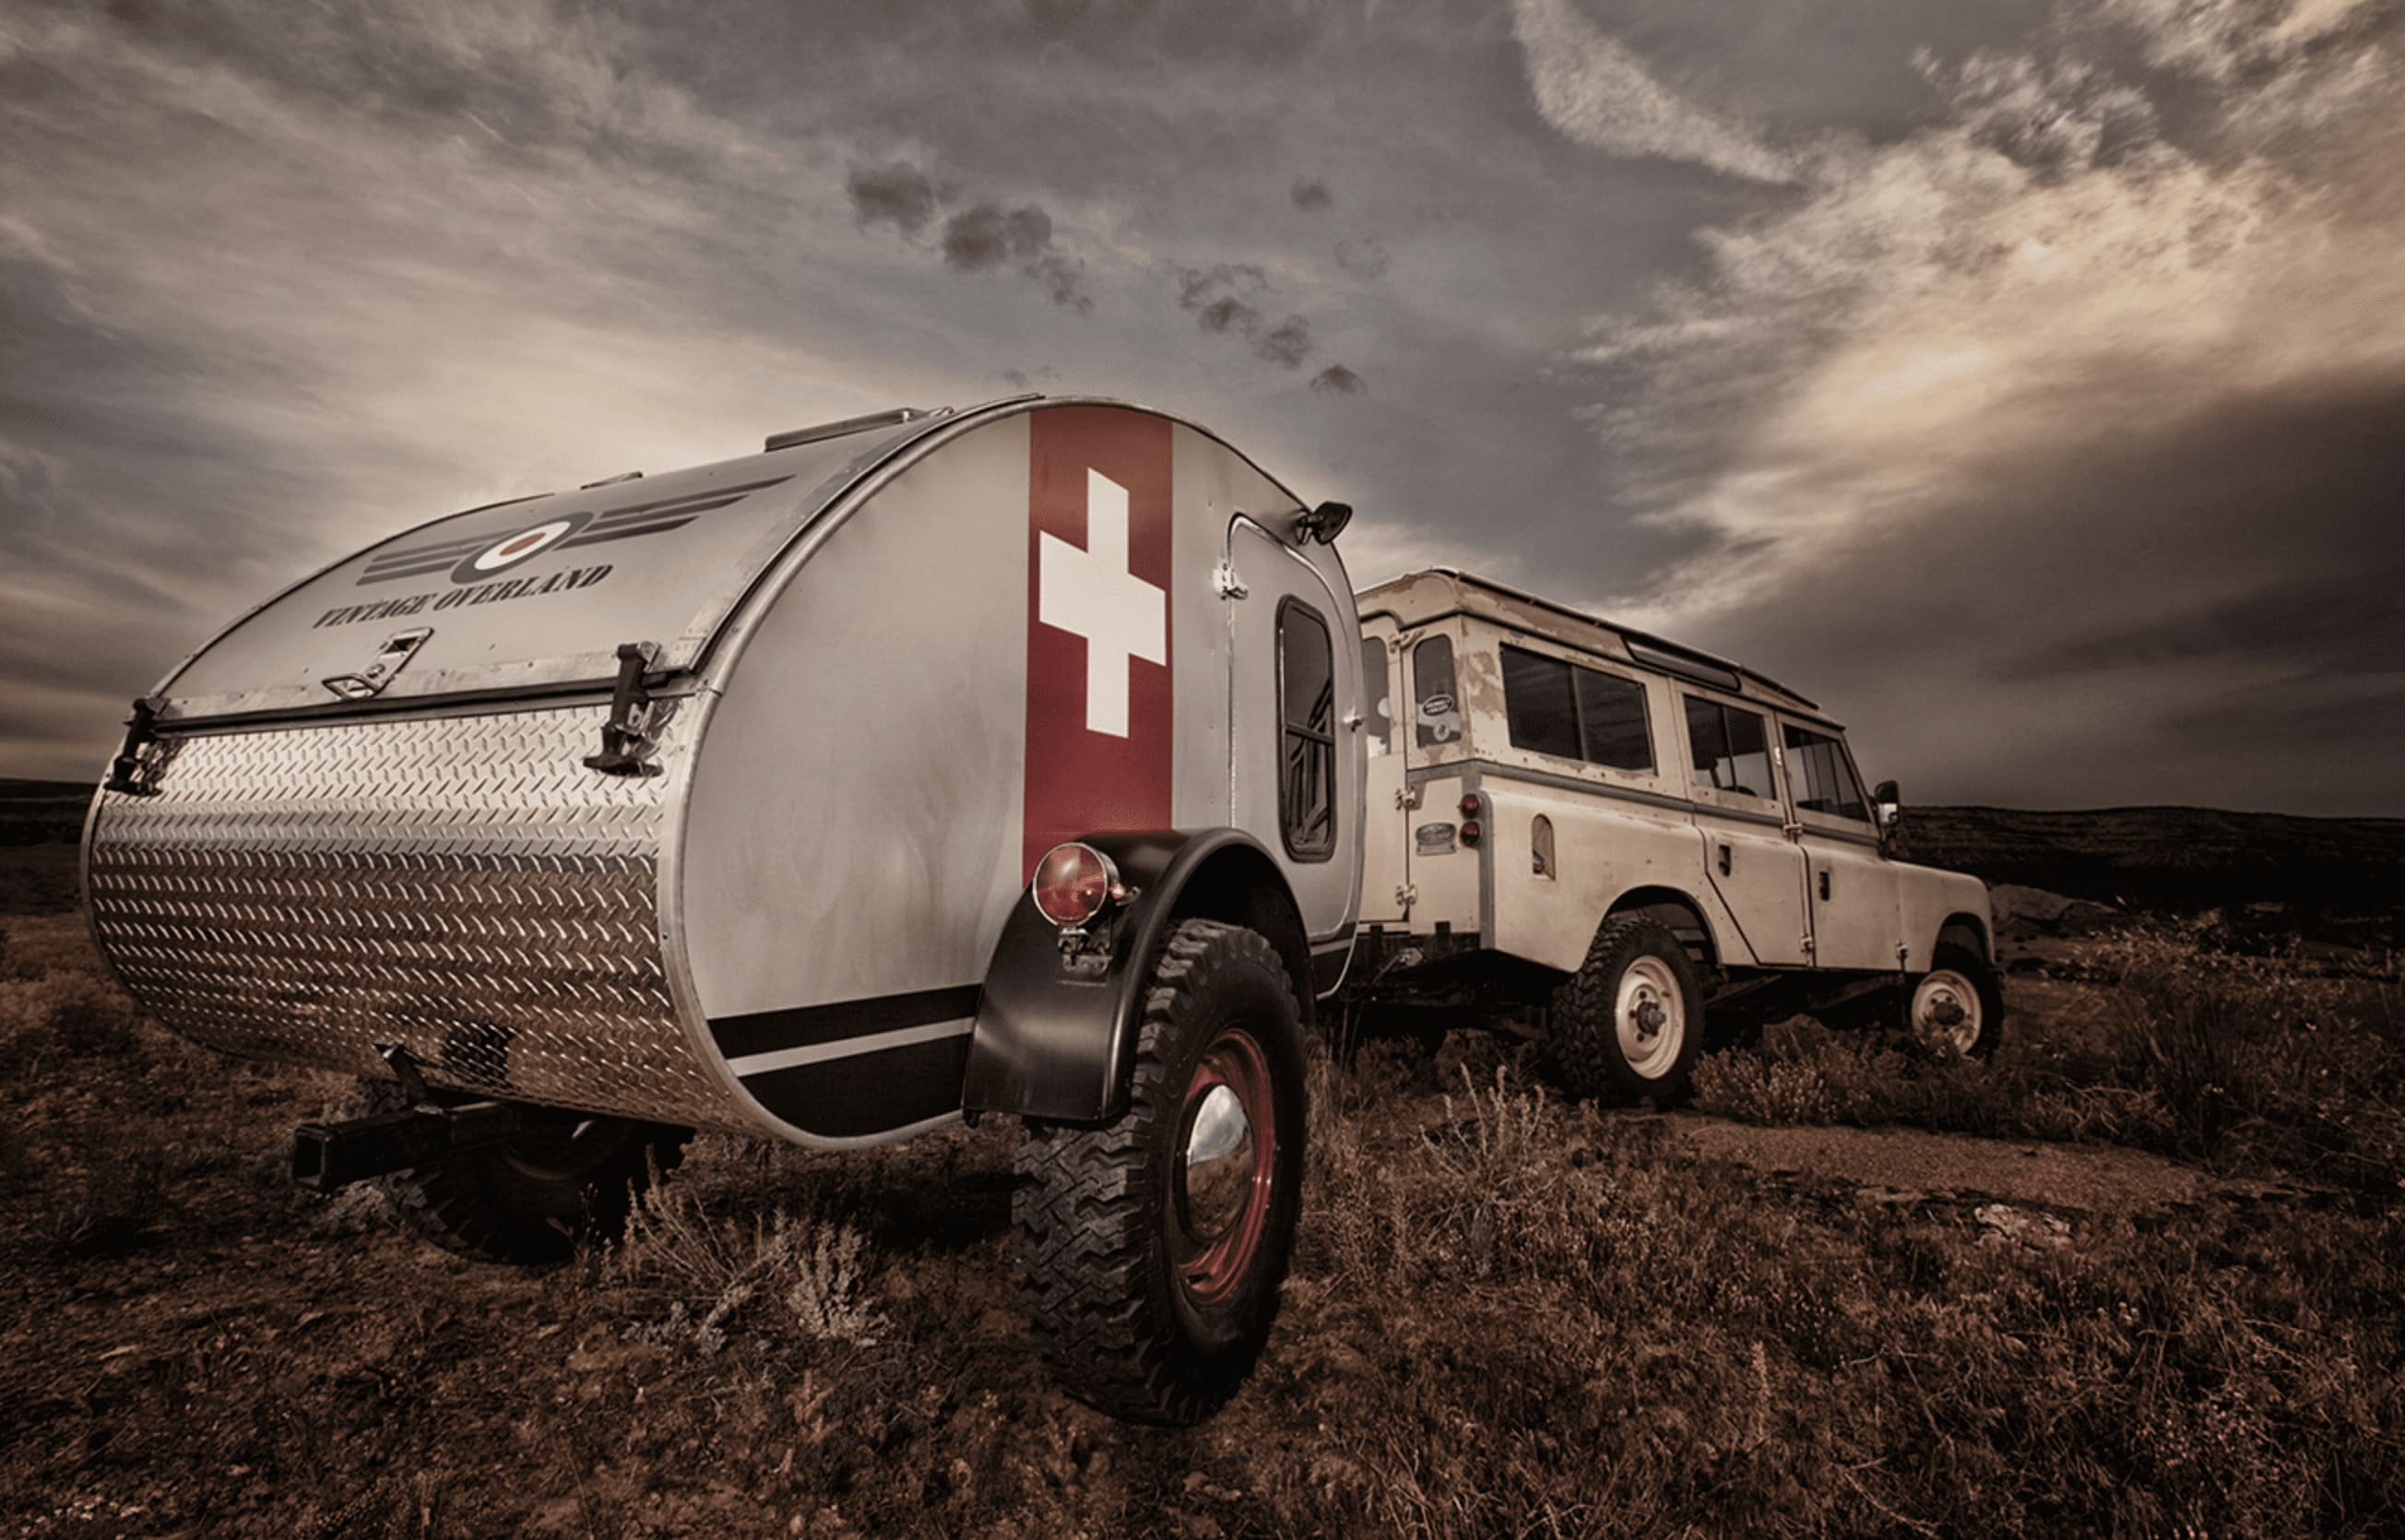 Vintage Overland Teardrop trailer towed by a land rover